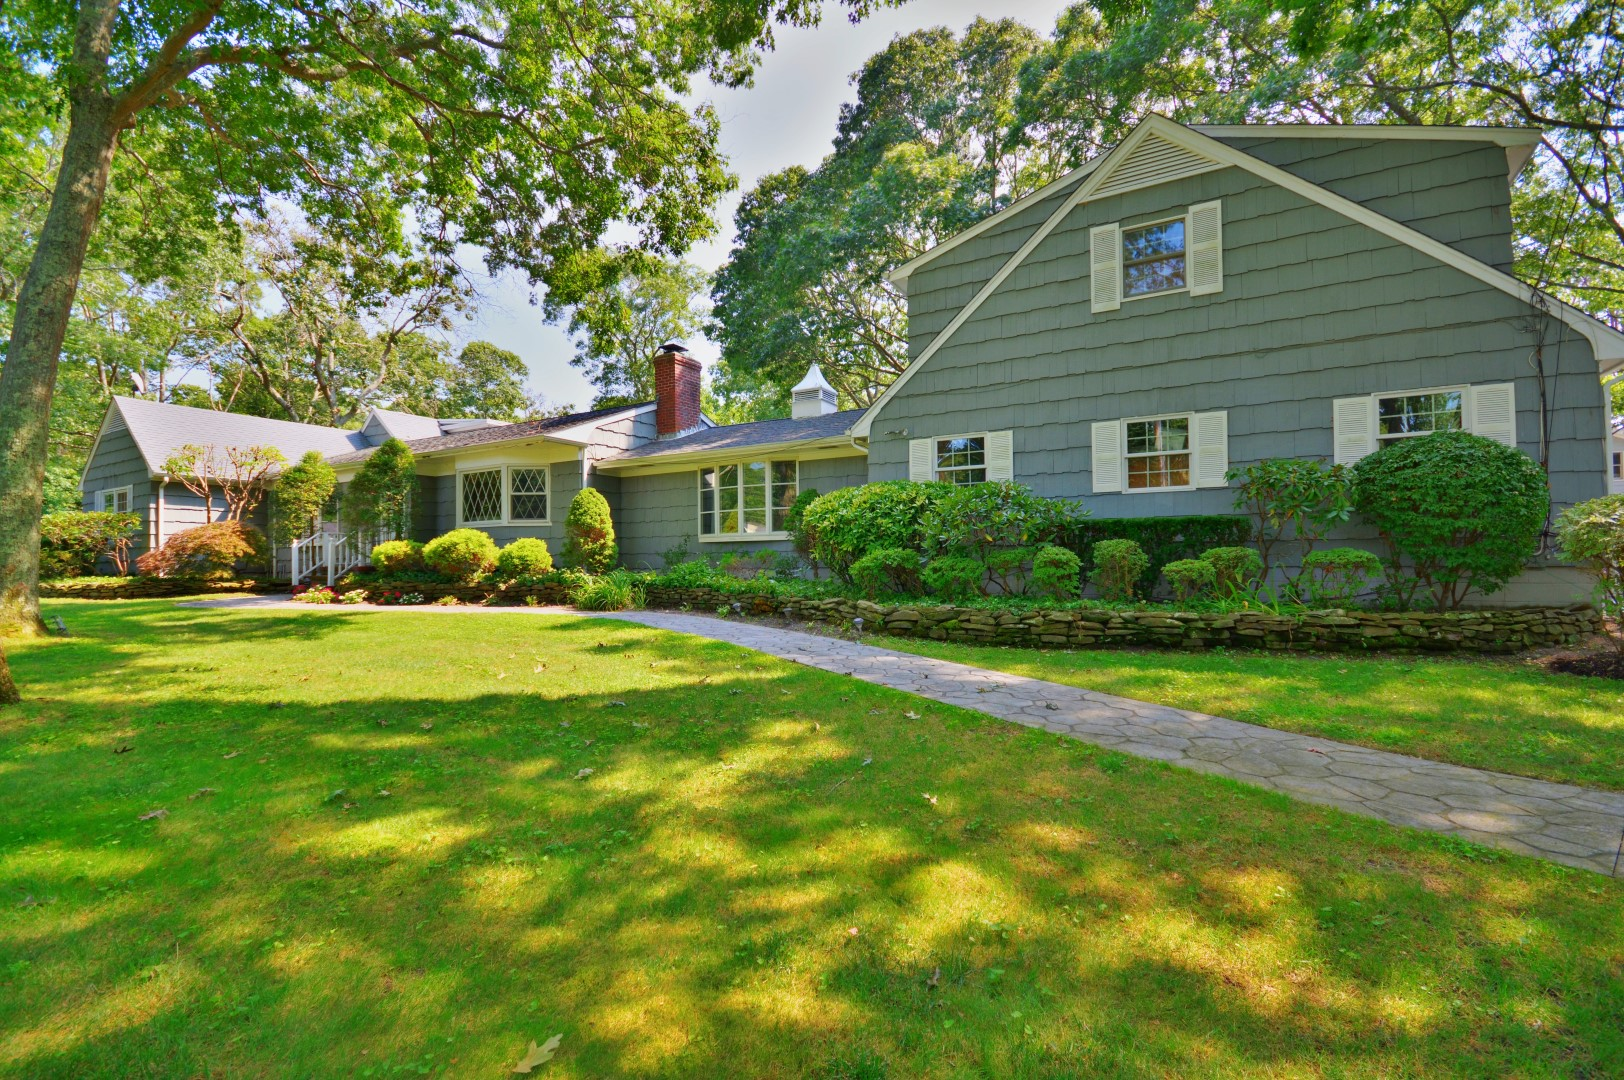 17 Woodfield Ave, East Quogue, New York 11942